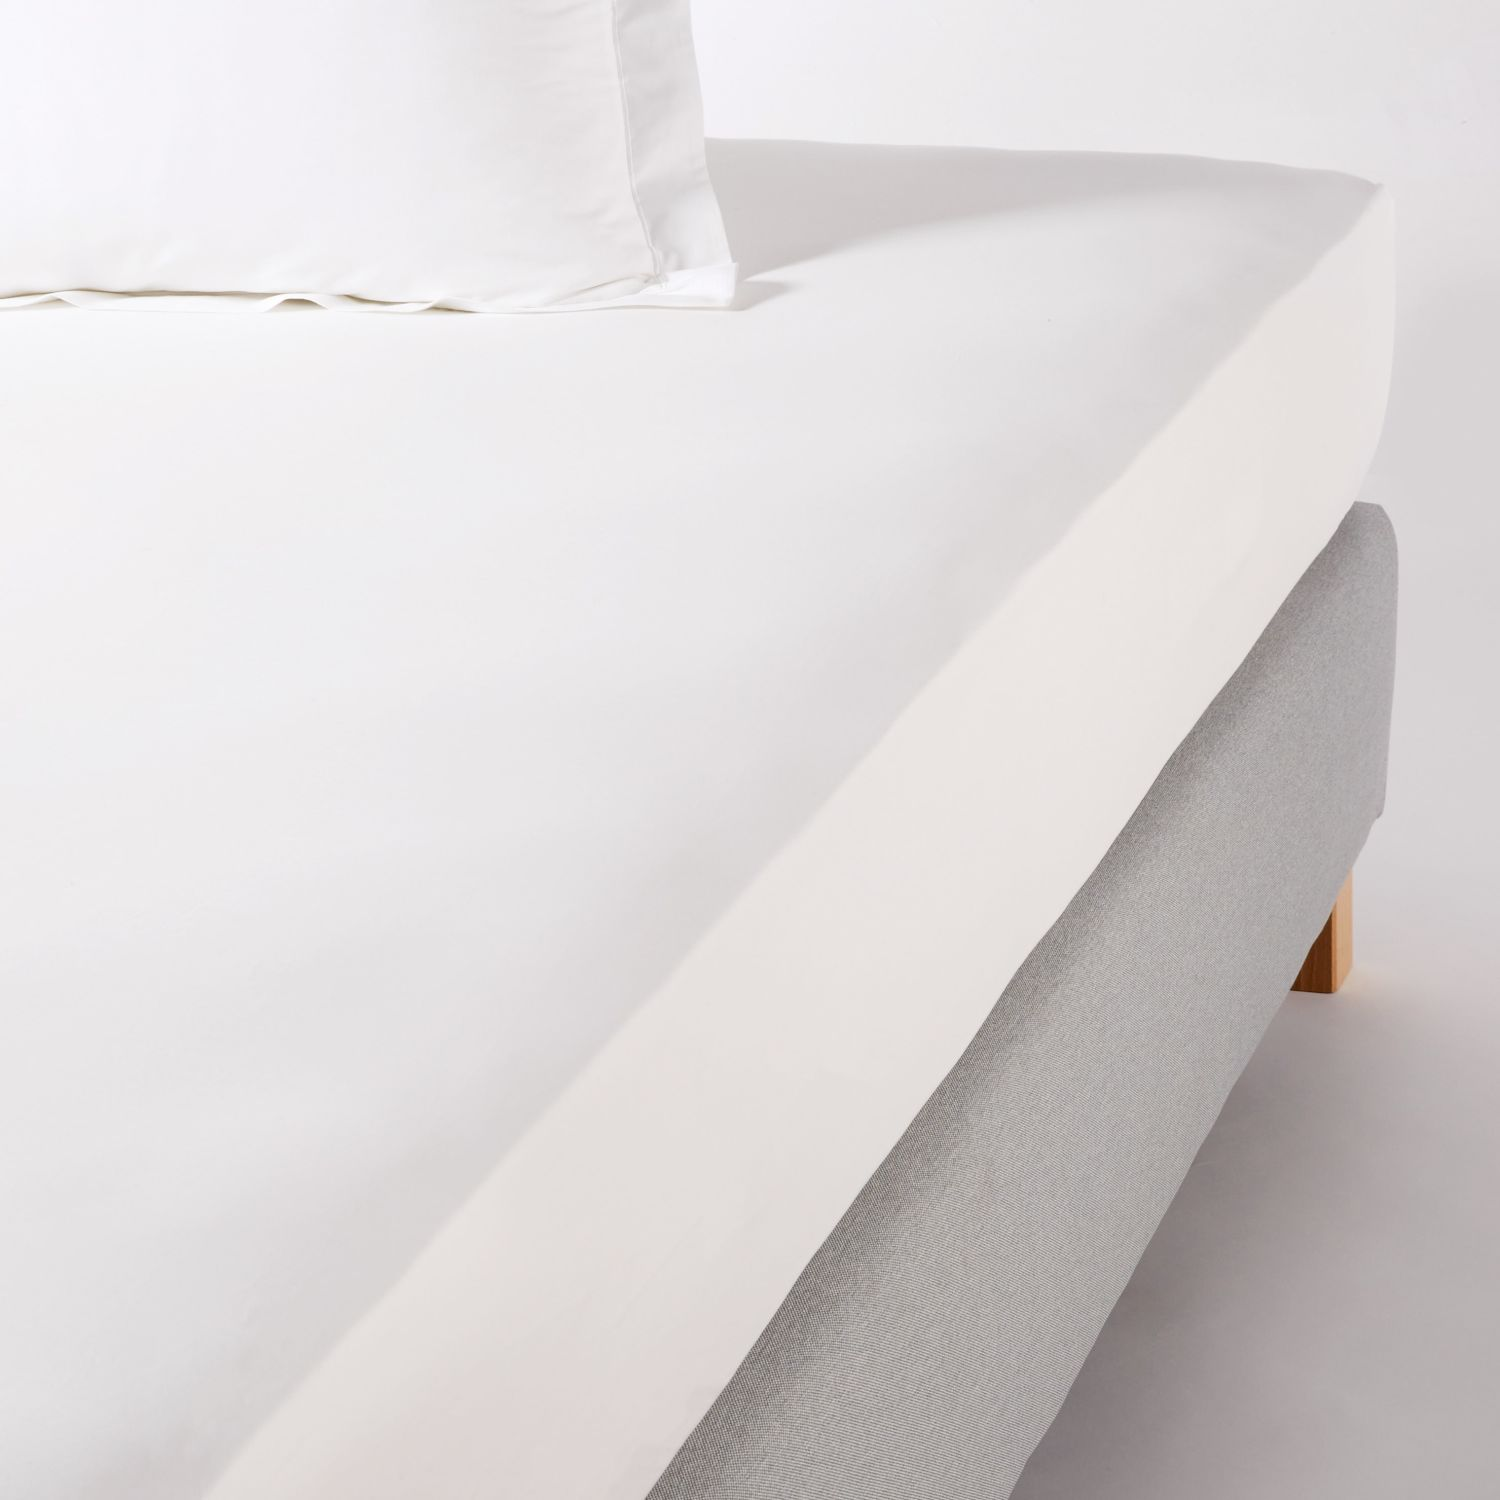 drap housse en percale de coton blanc 180x200 bonnet 25 maisons du monde. Black Bedroom Furniture Sets. Home Design Ideas